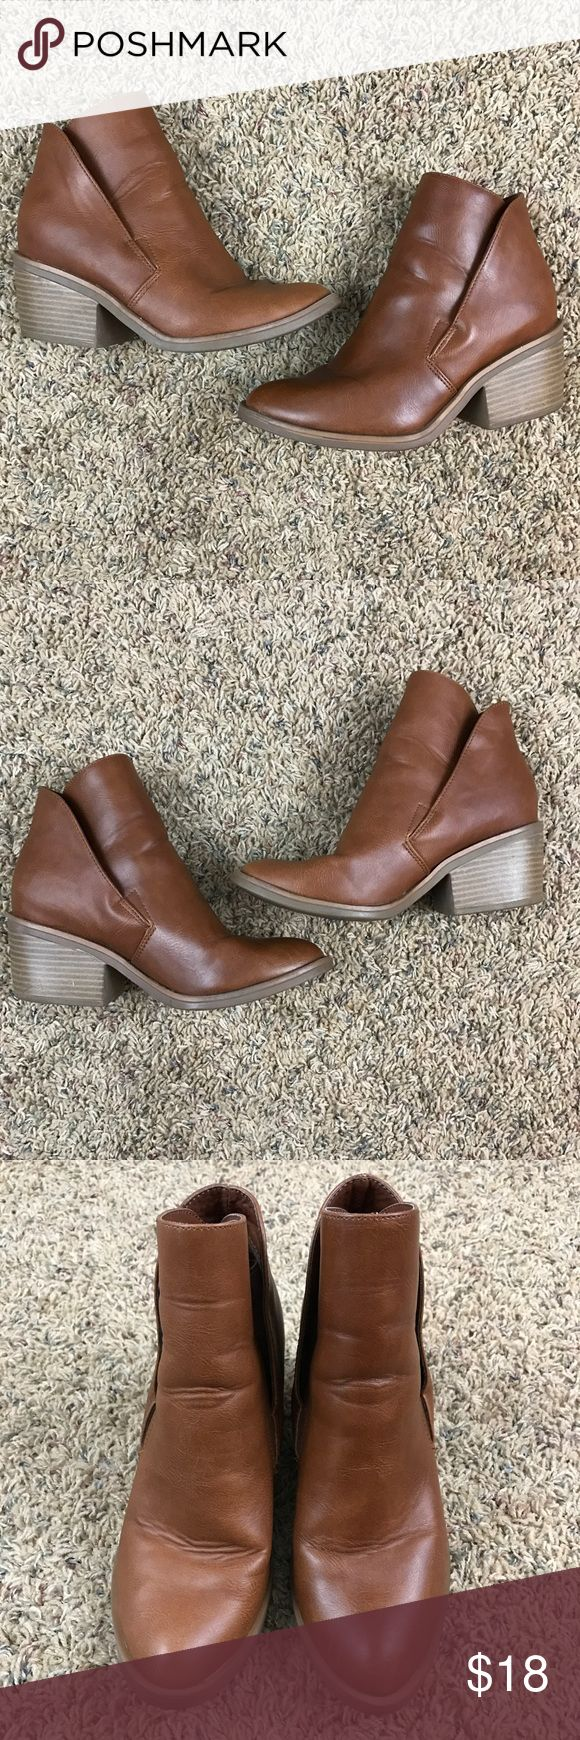 "Apt. 9 Cognac Ankle Booties Excellent condition. Very stylish cow boy boot style. Boot has elastic inside so they are easy to slip on. Just short of 2.5"" heel. Beautiful boot for upcoming fall! Women's 6.5. ❤️ accepting offers and bundle discounts ❤️ Apt. 9 Shoes Ankle Boots & Booties"